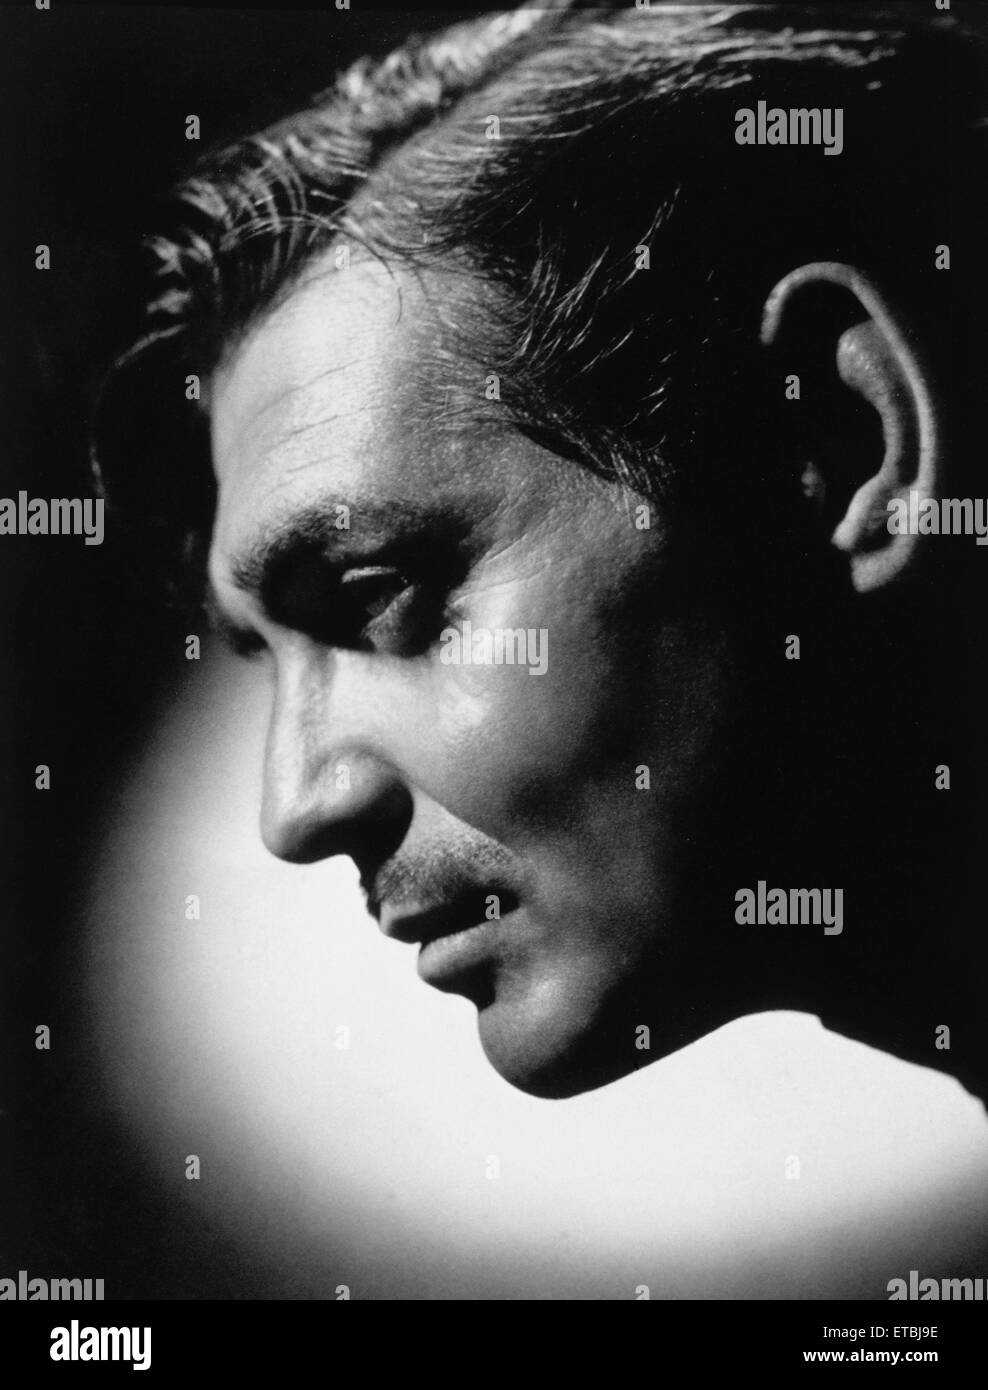 Actor Clark Gable, Close-Up Profile, 1945 - Stock Image